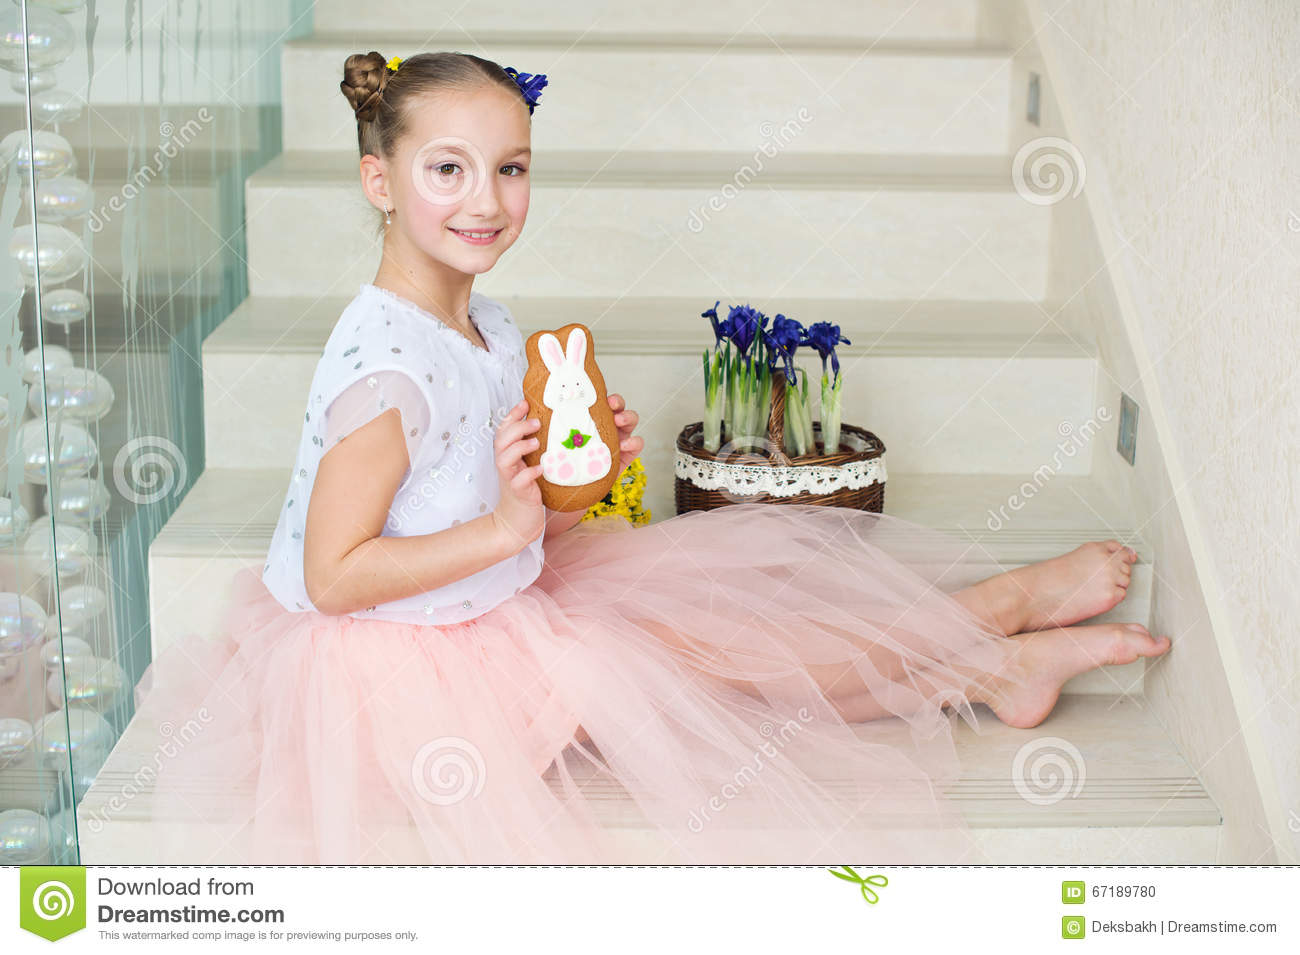 Toddler funny ballerina girl at home ready to celebrate spring a